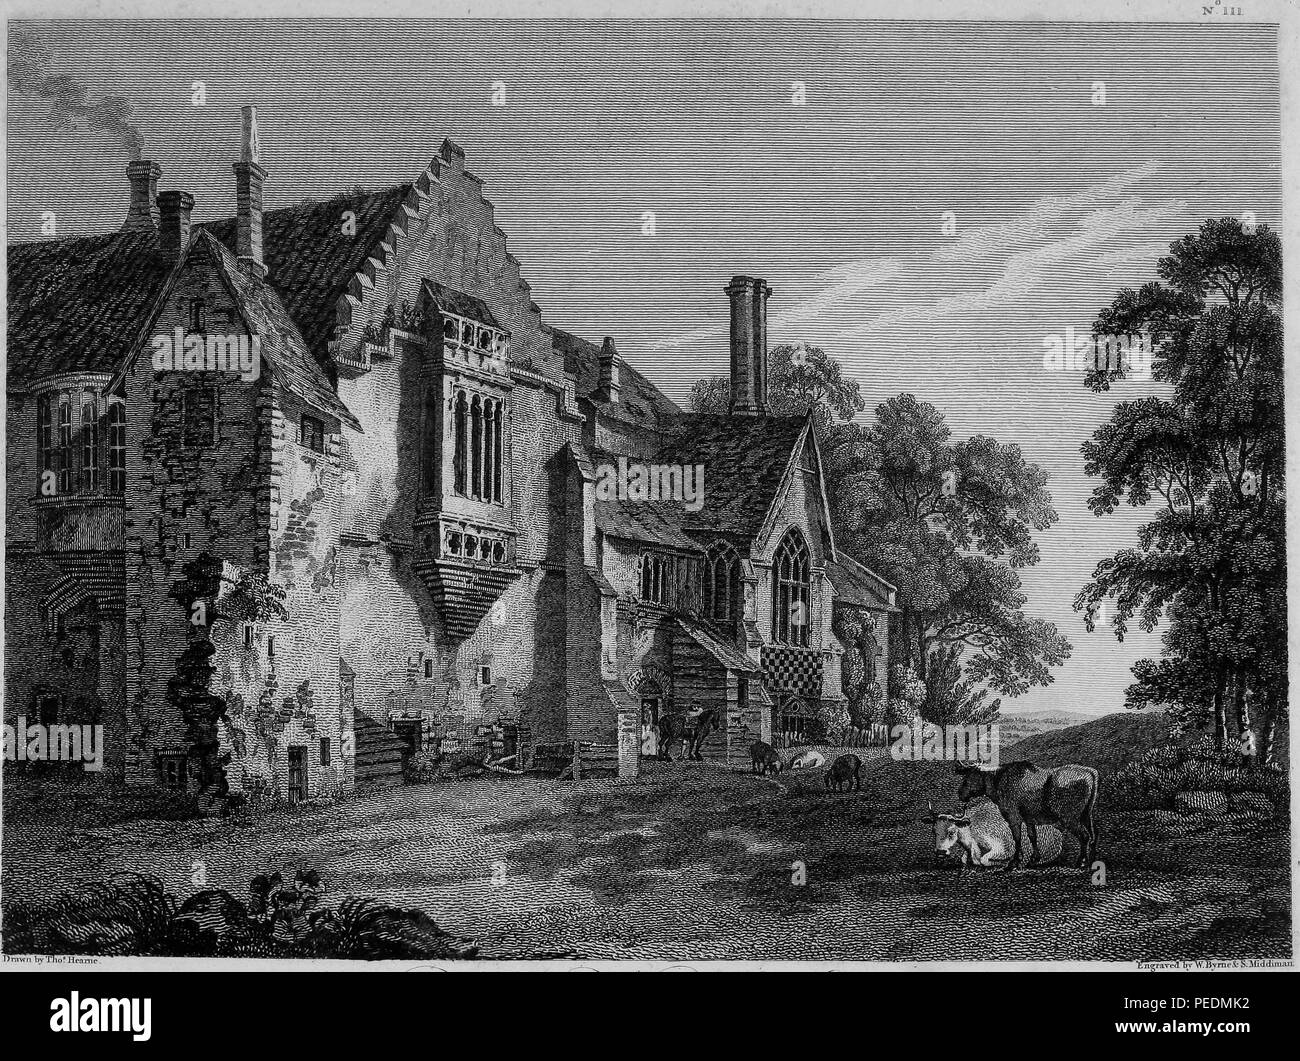 Black and white engraving, depicting an angled view of the decaying facade of 'Castle Acre Priory' a medieval, Cluniac priory located in Castle Acre, Norfolk, England, with cows and other livestock standing and sitting in the foreground, drawn by T Hearne and engraved by W Byrne and S Middiman, 1825. Courtesy Internet Archive. () Stock Photo